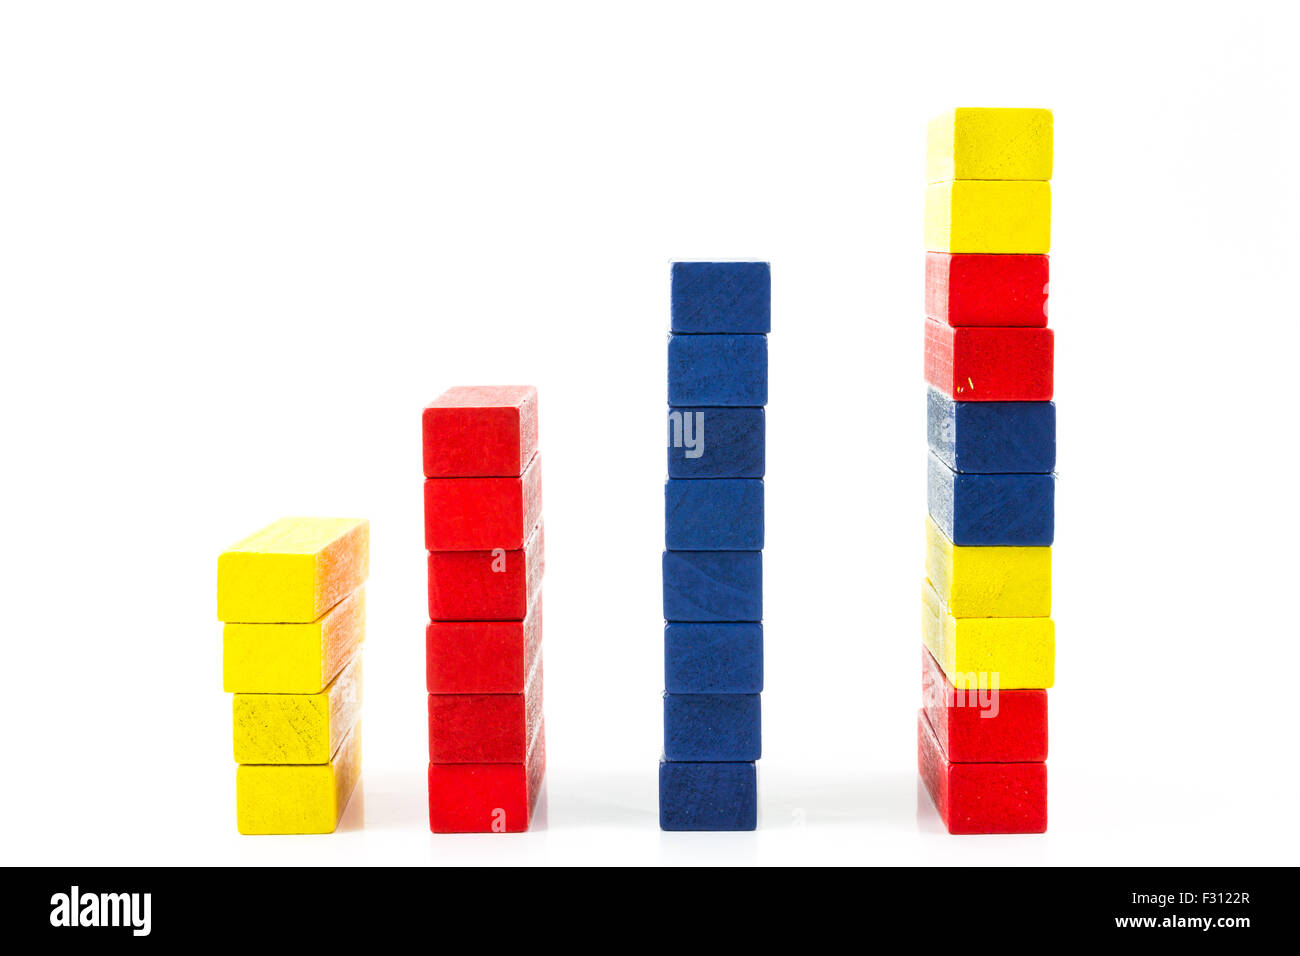 Red, Blue, Yellow wood toy as a statistical bars on white background - Stock Image